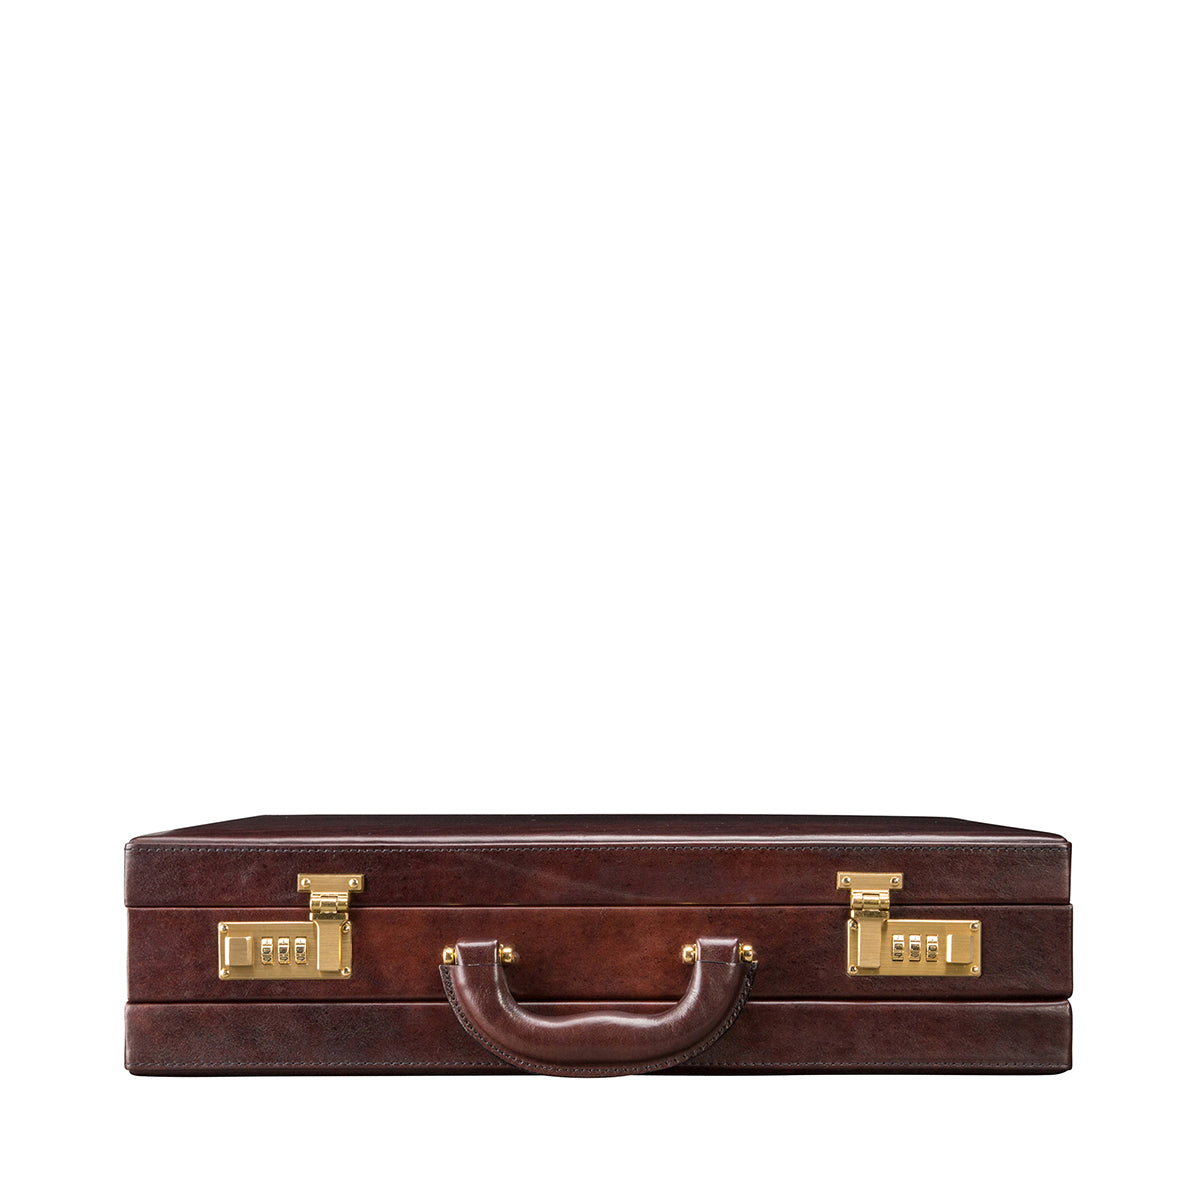 Image 4 of the 'Strada' Dark Chocolate Veg-Tanned Leather Business Attaché  Case